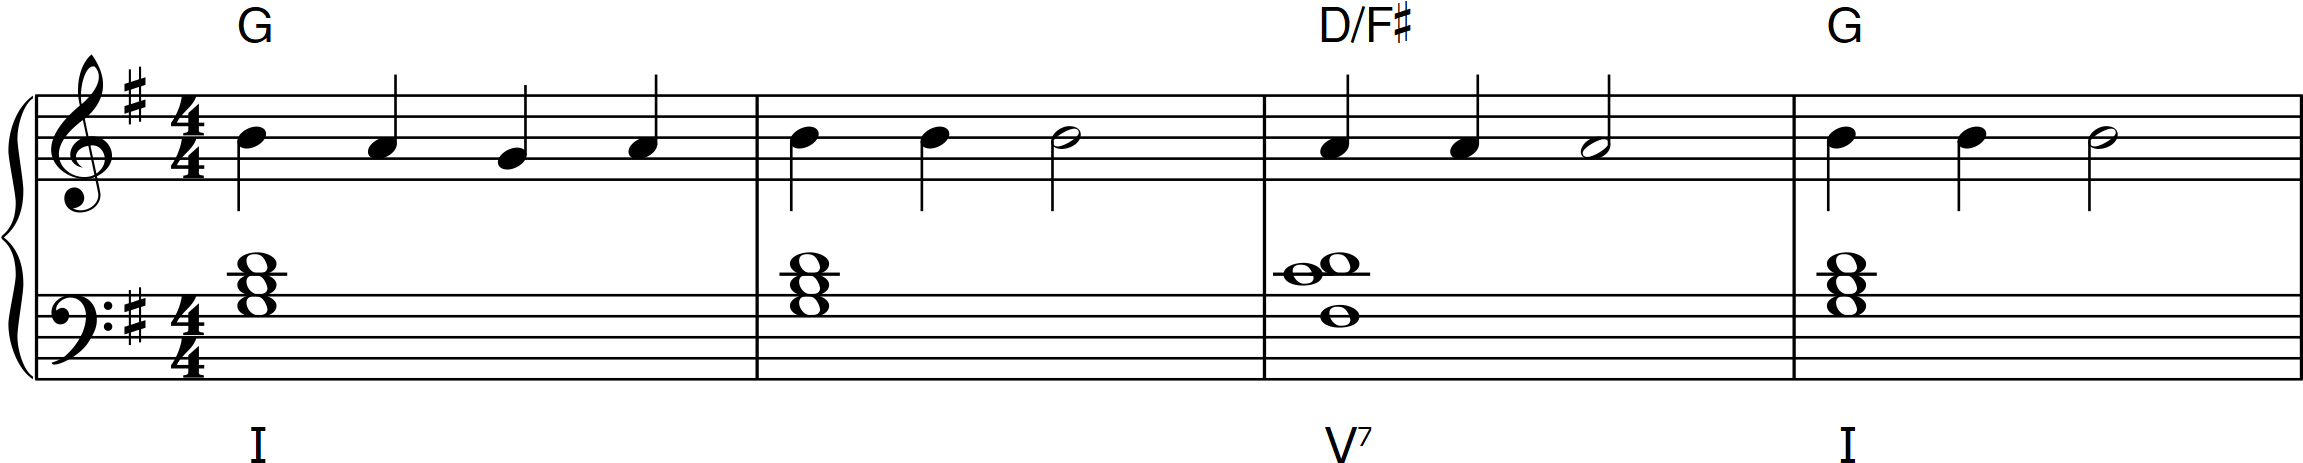 Keyboard Exercise Article 2 - Fig_13